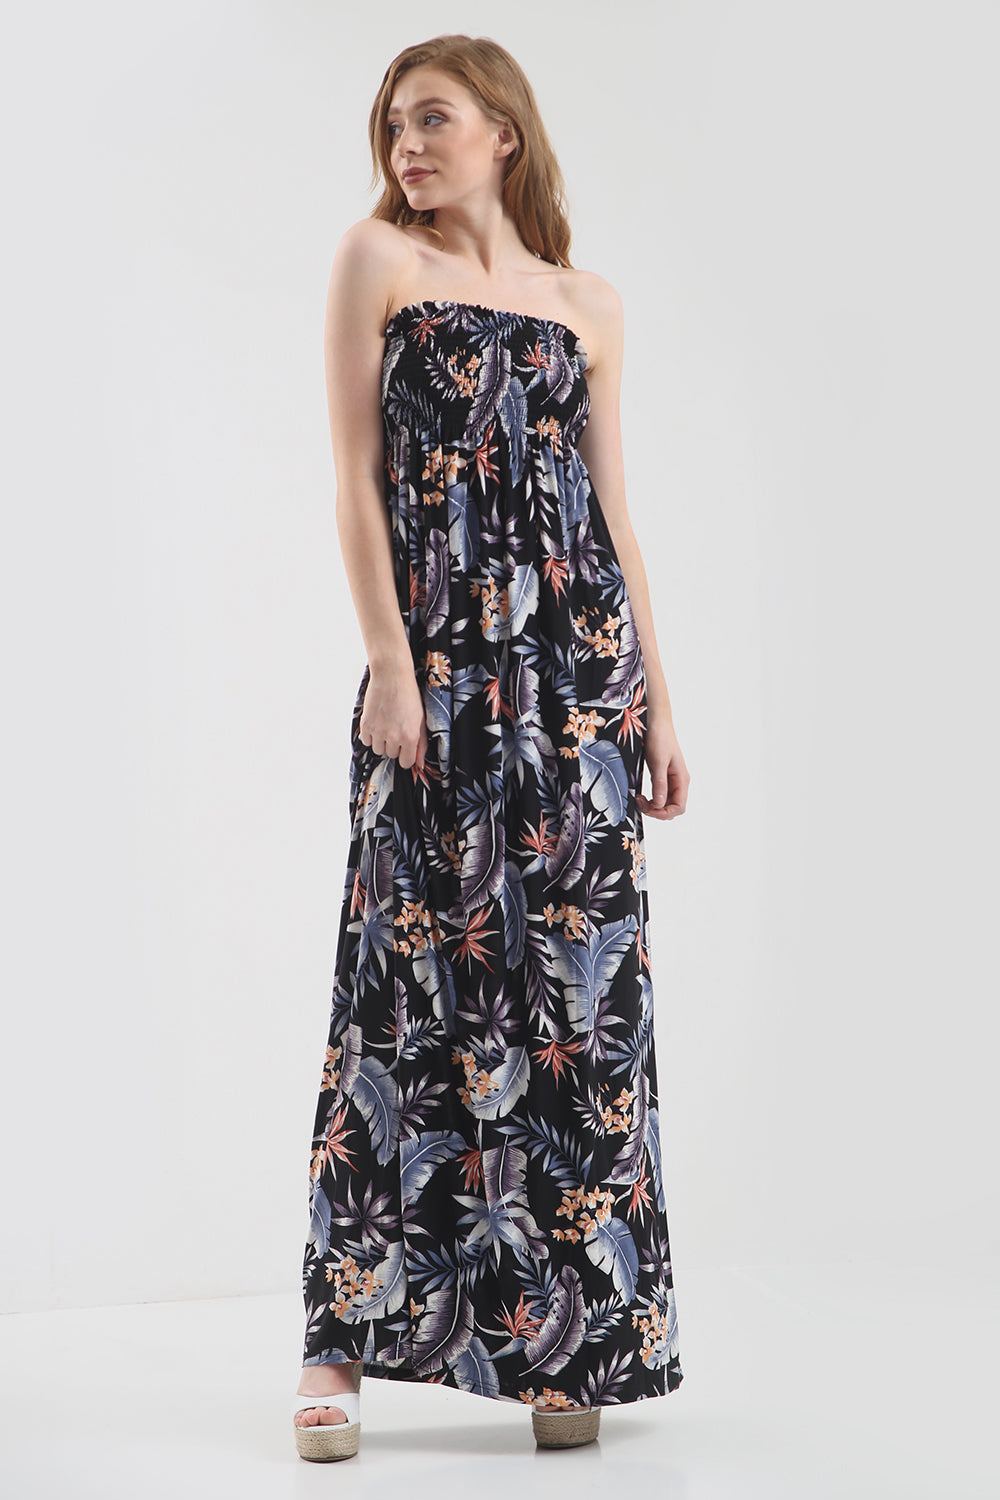 Tropical Print Bardot Cream Maxi Dress - bejealous-com